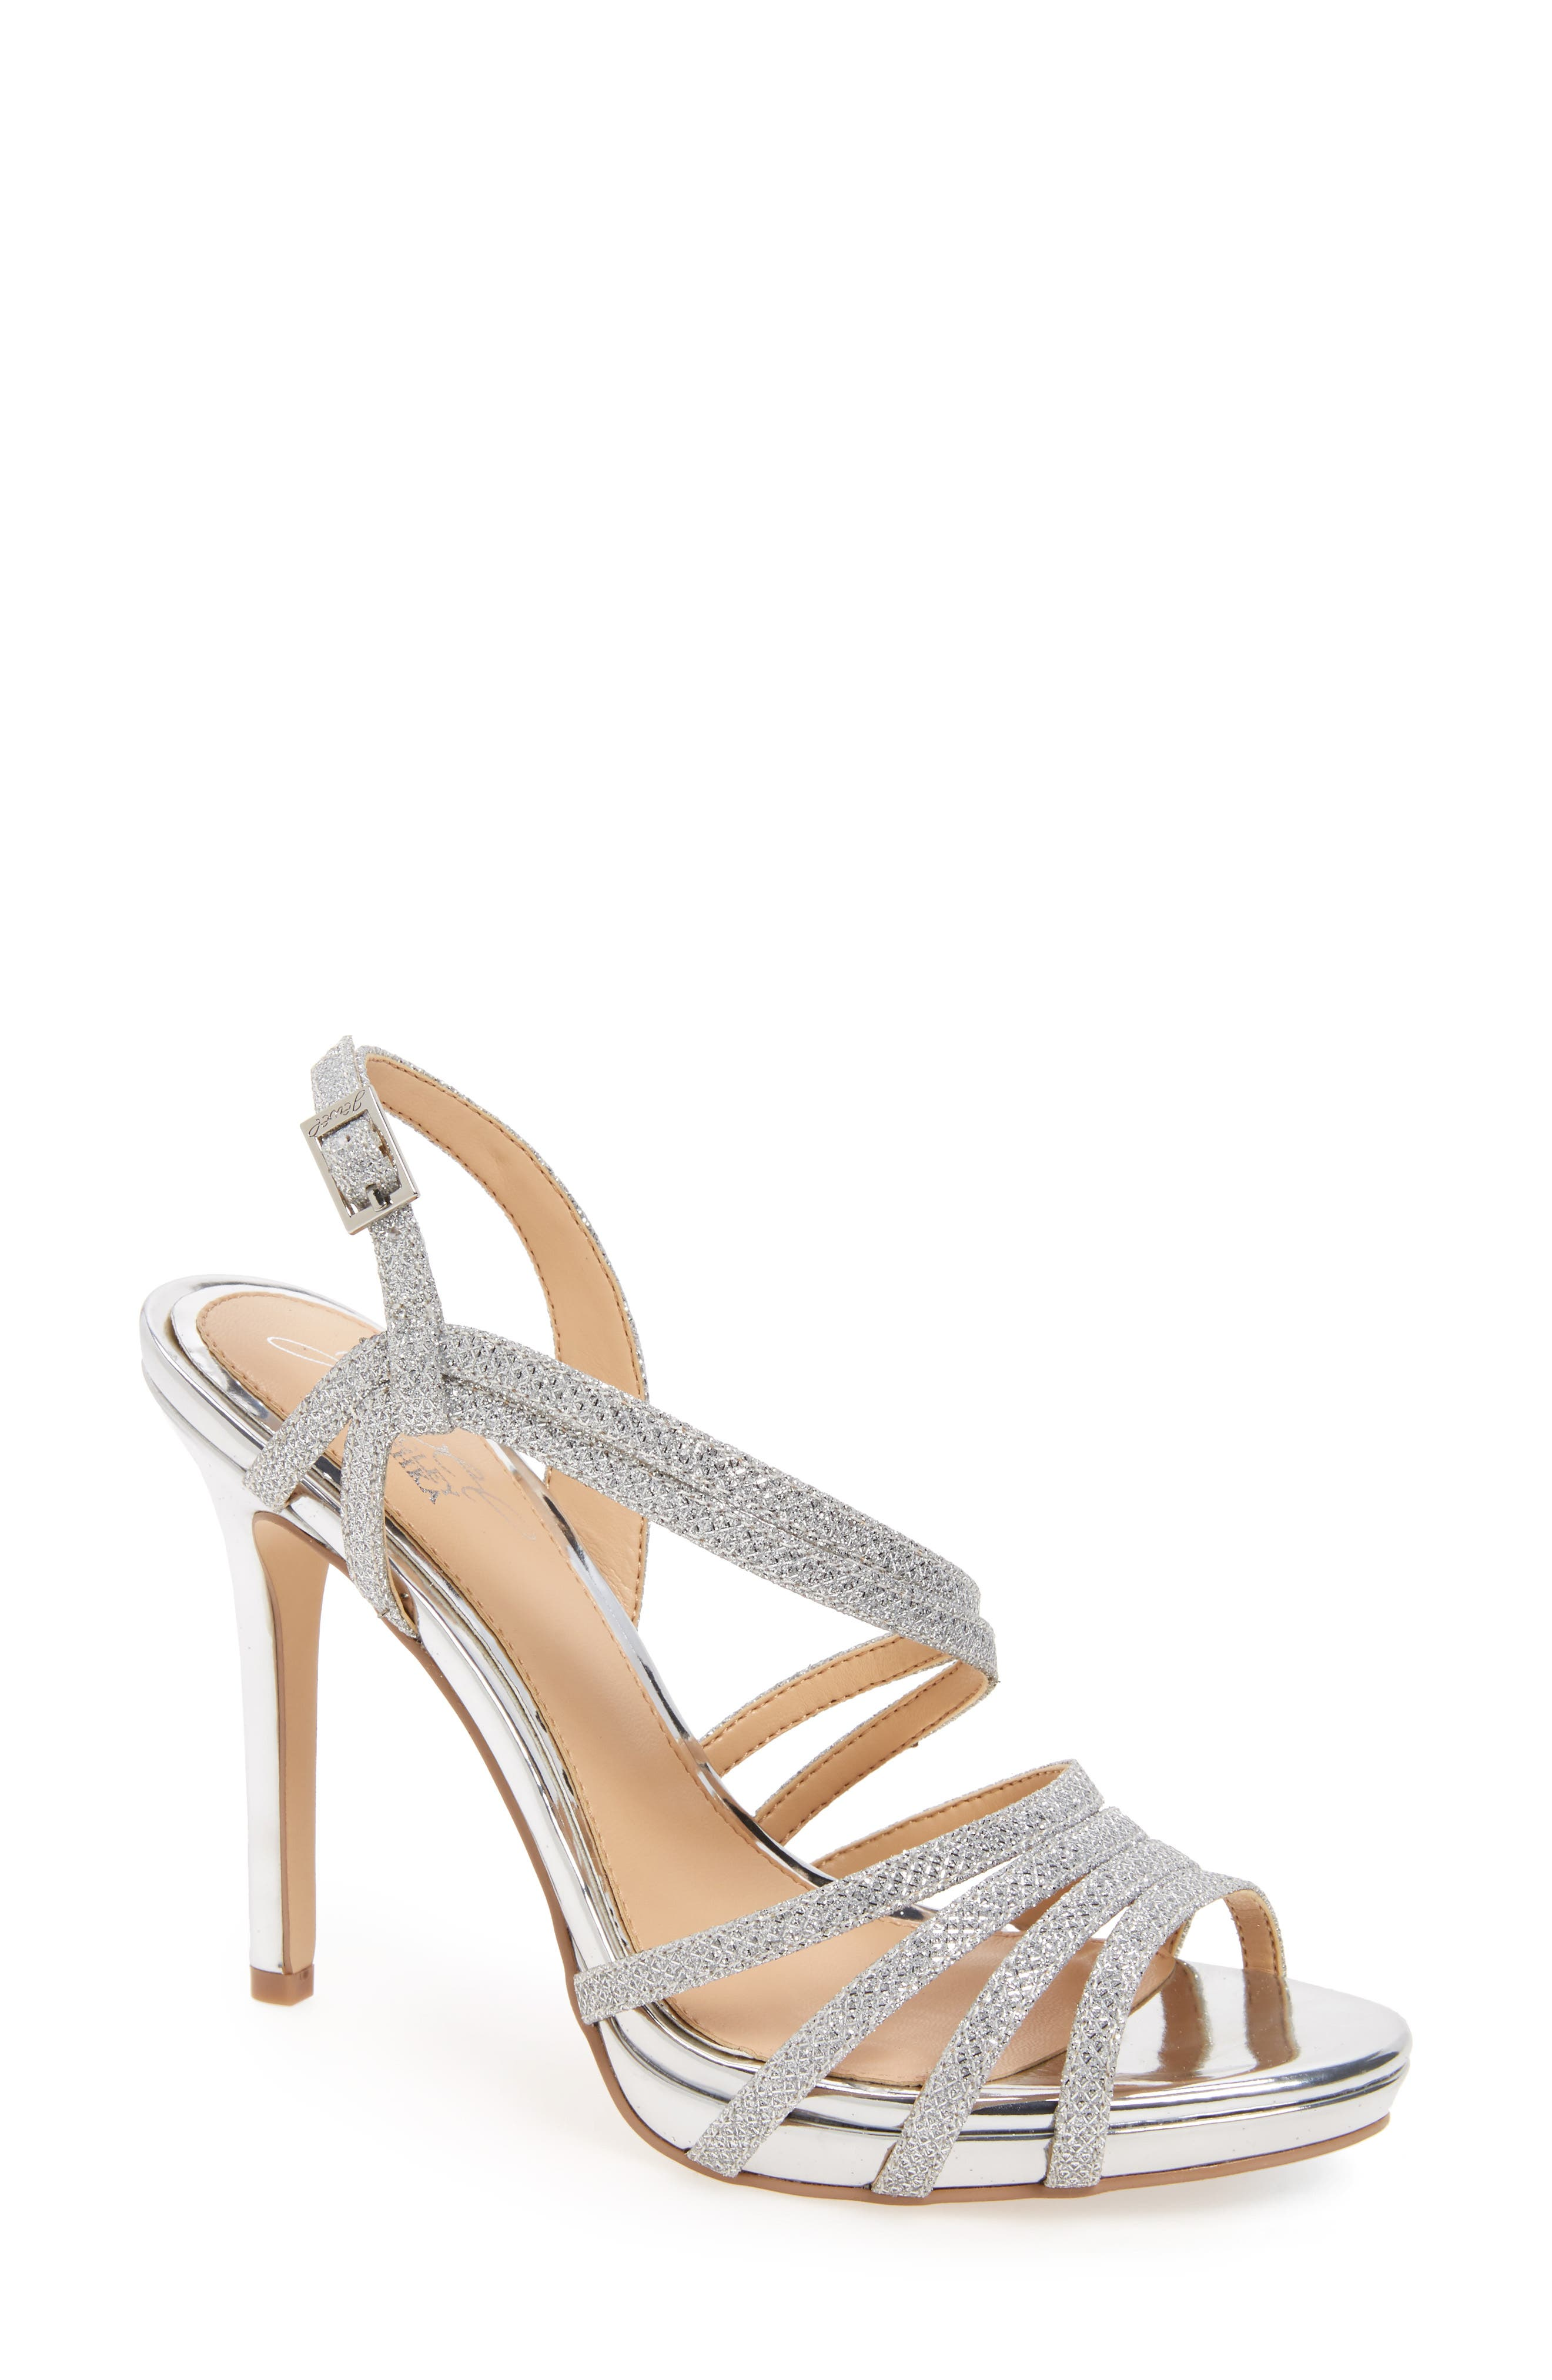 Humble Strappy Sandal,                         Main,                         color, 043